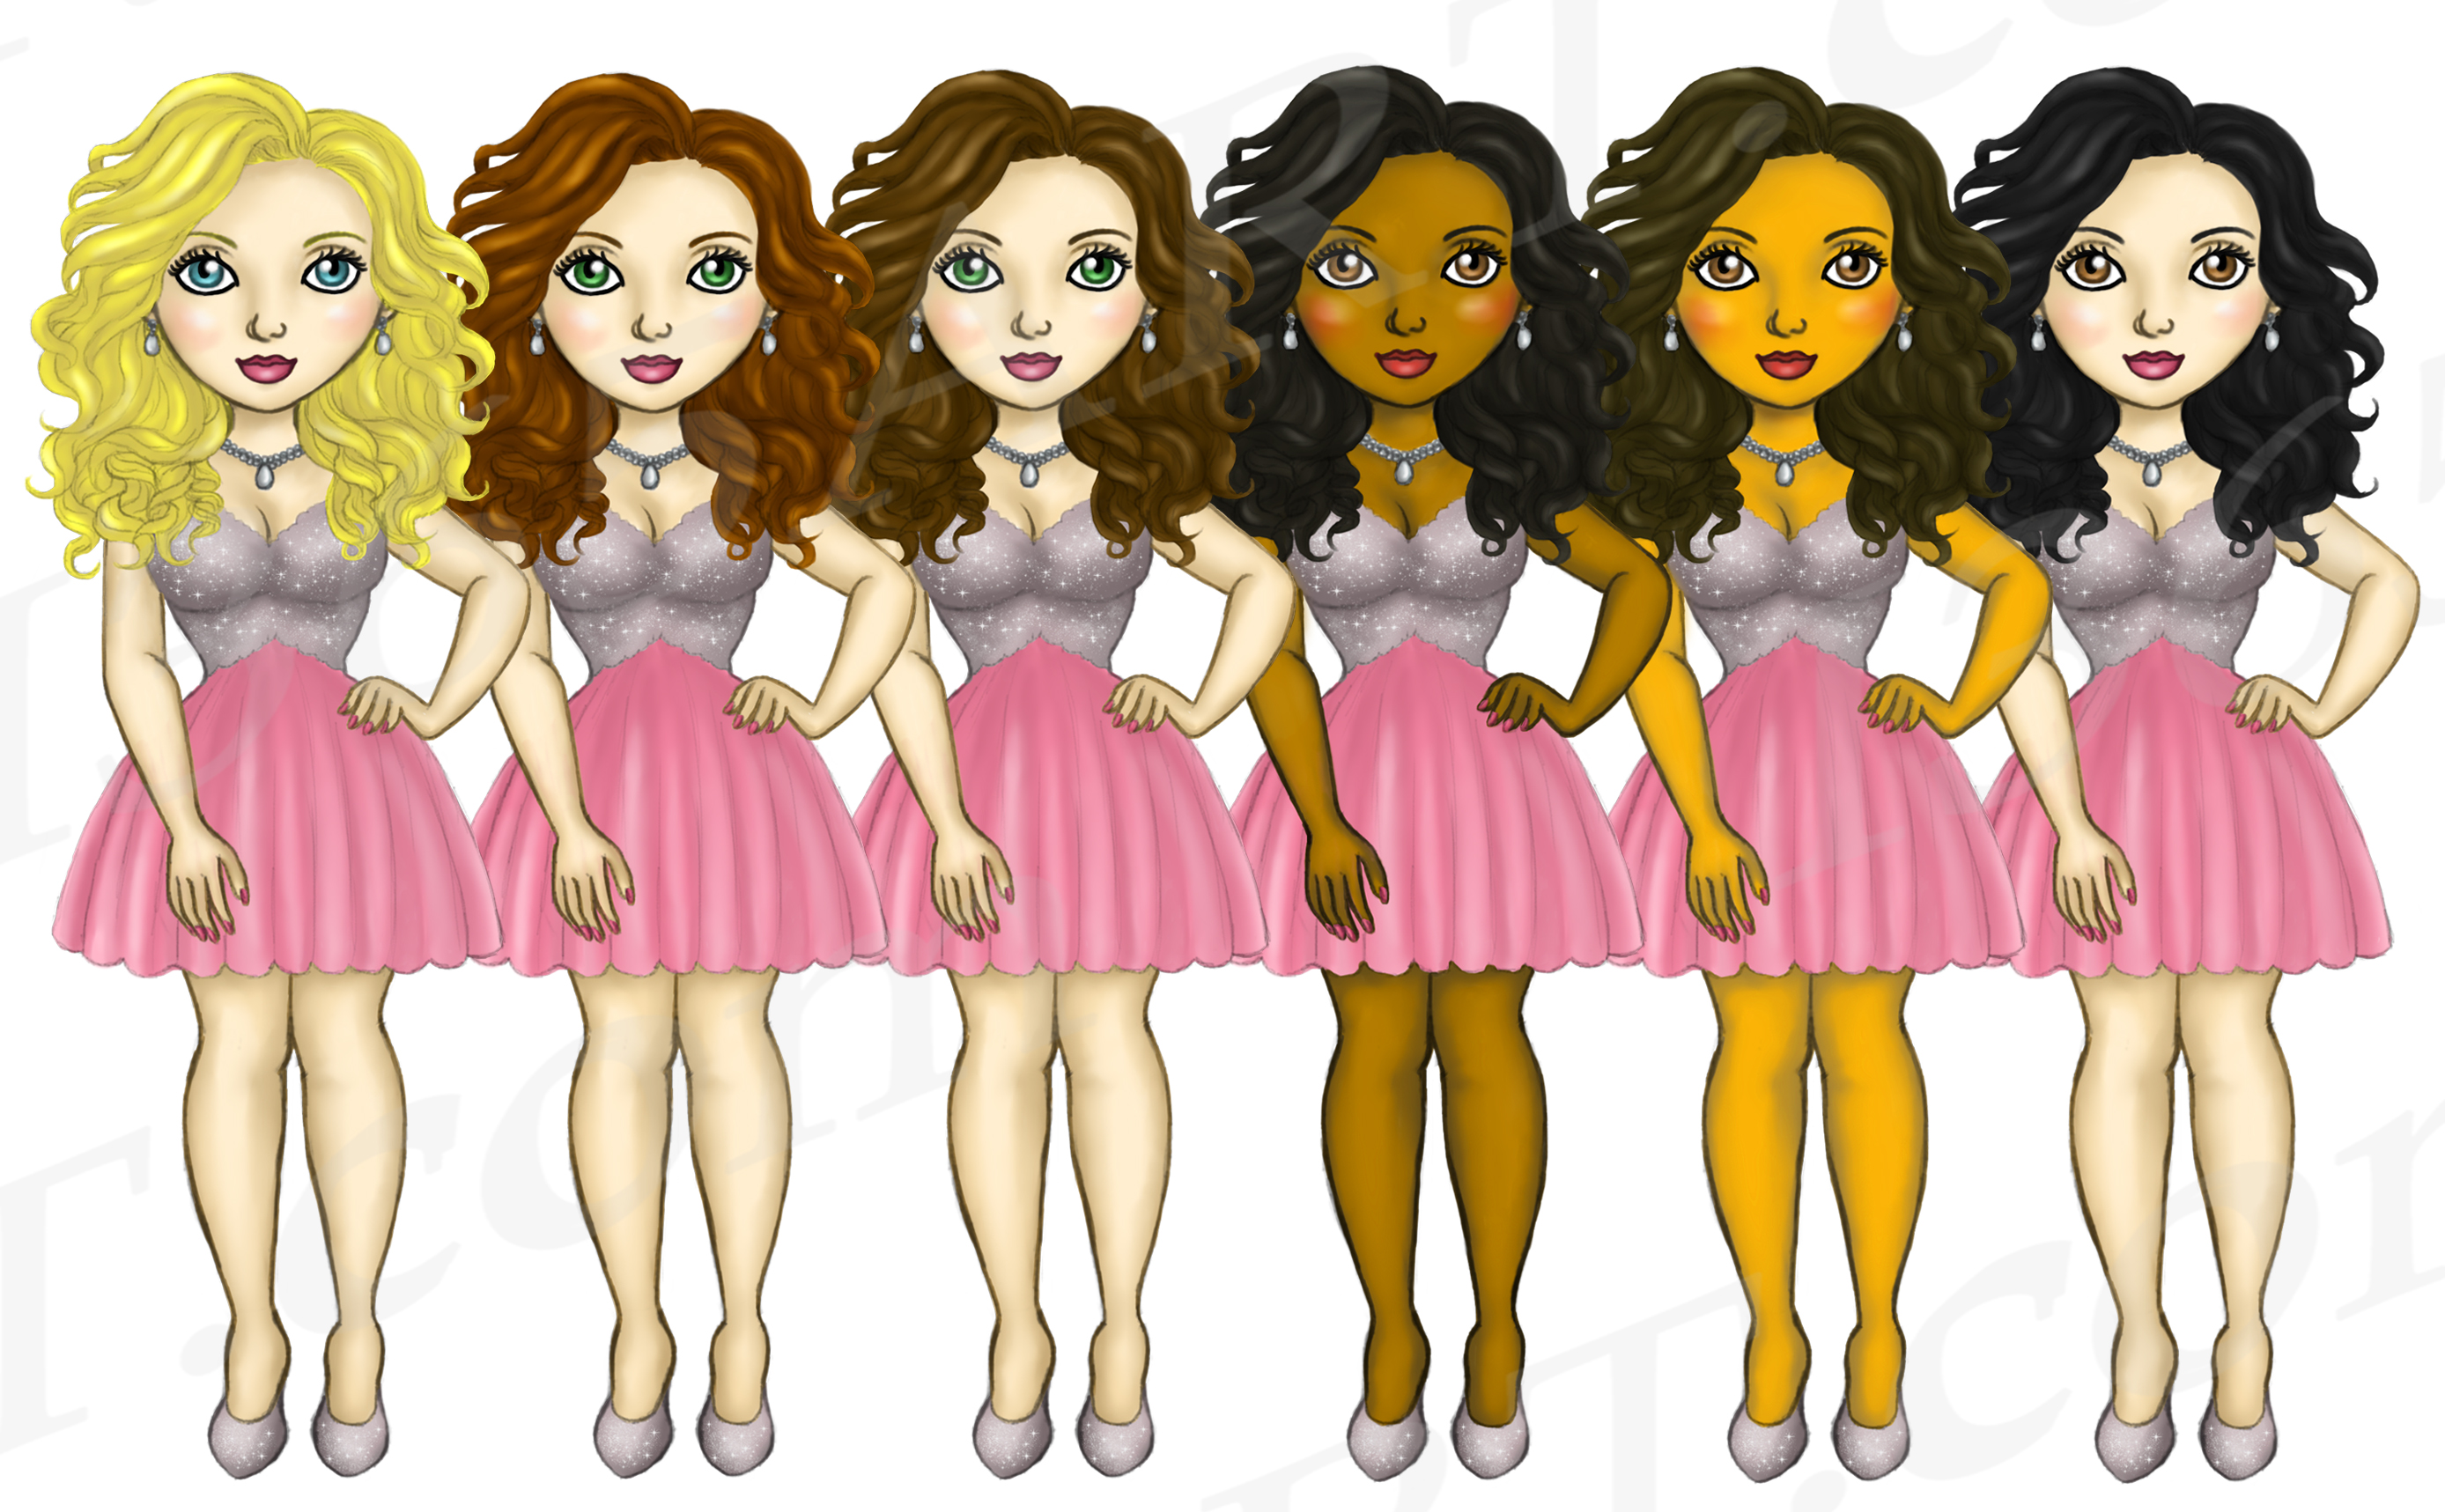 Party Dress Girls Cute Pink Dress Clipart, Fashion Dolls example image 2